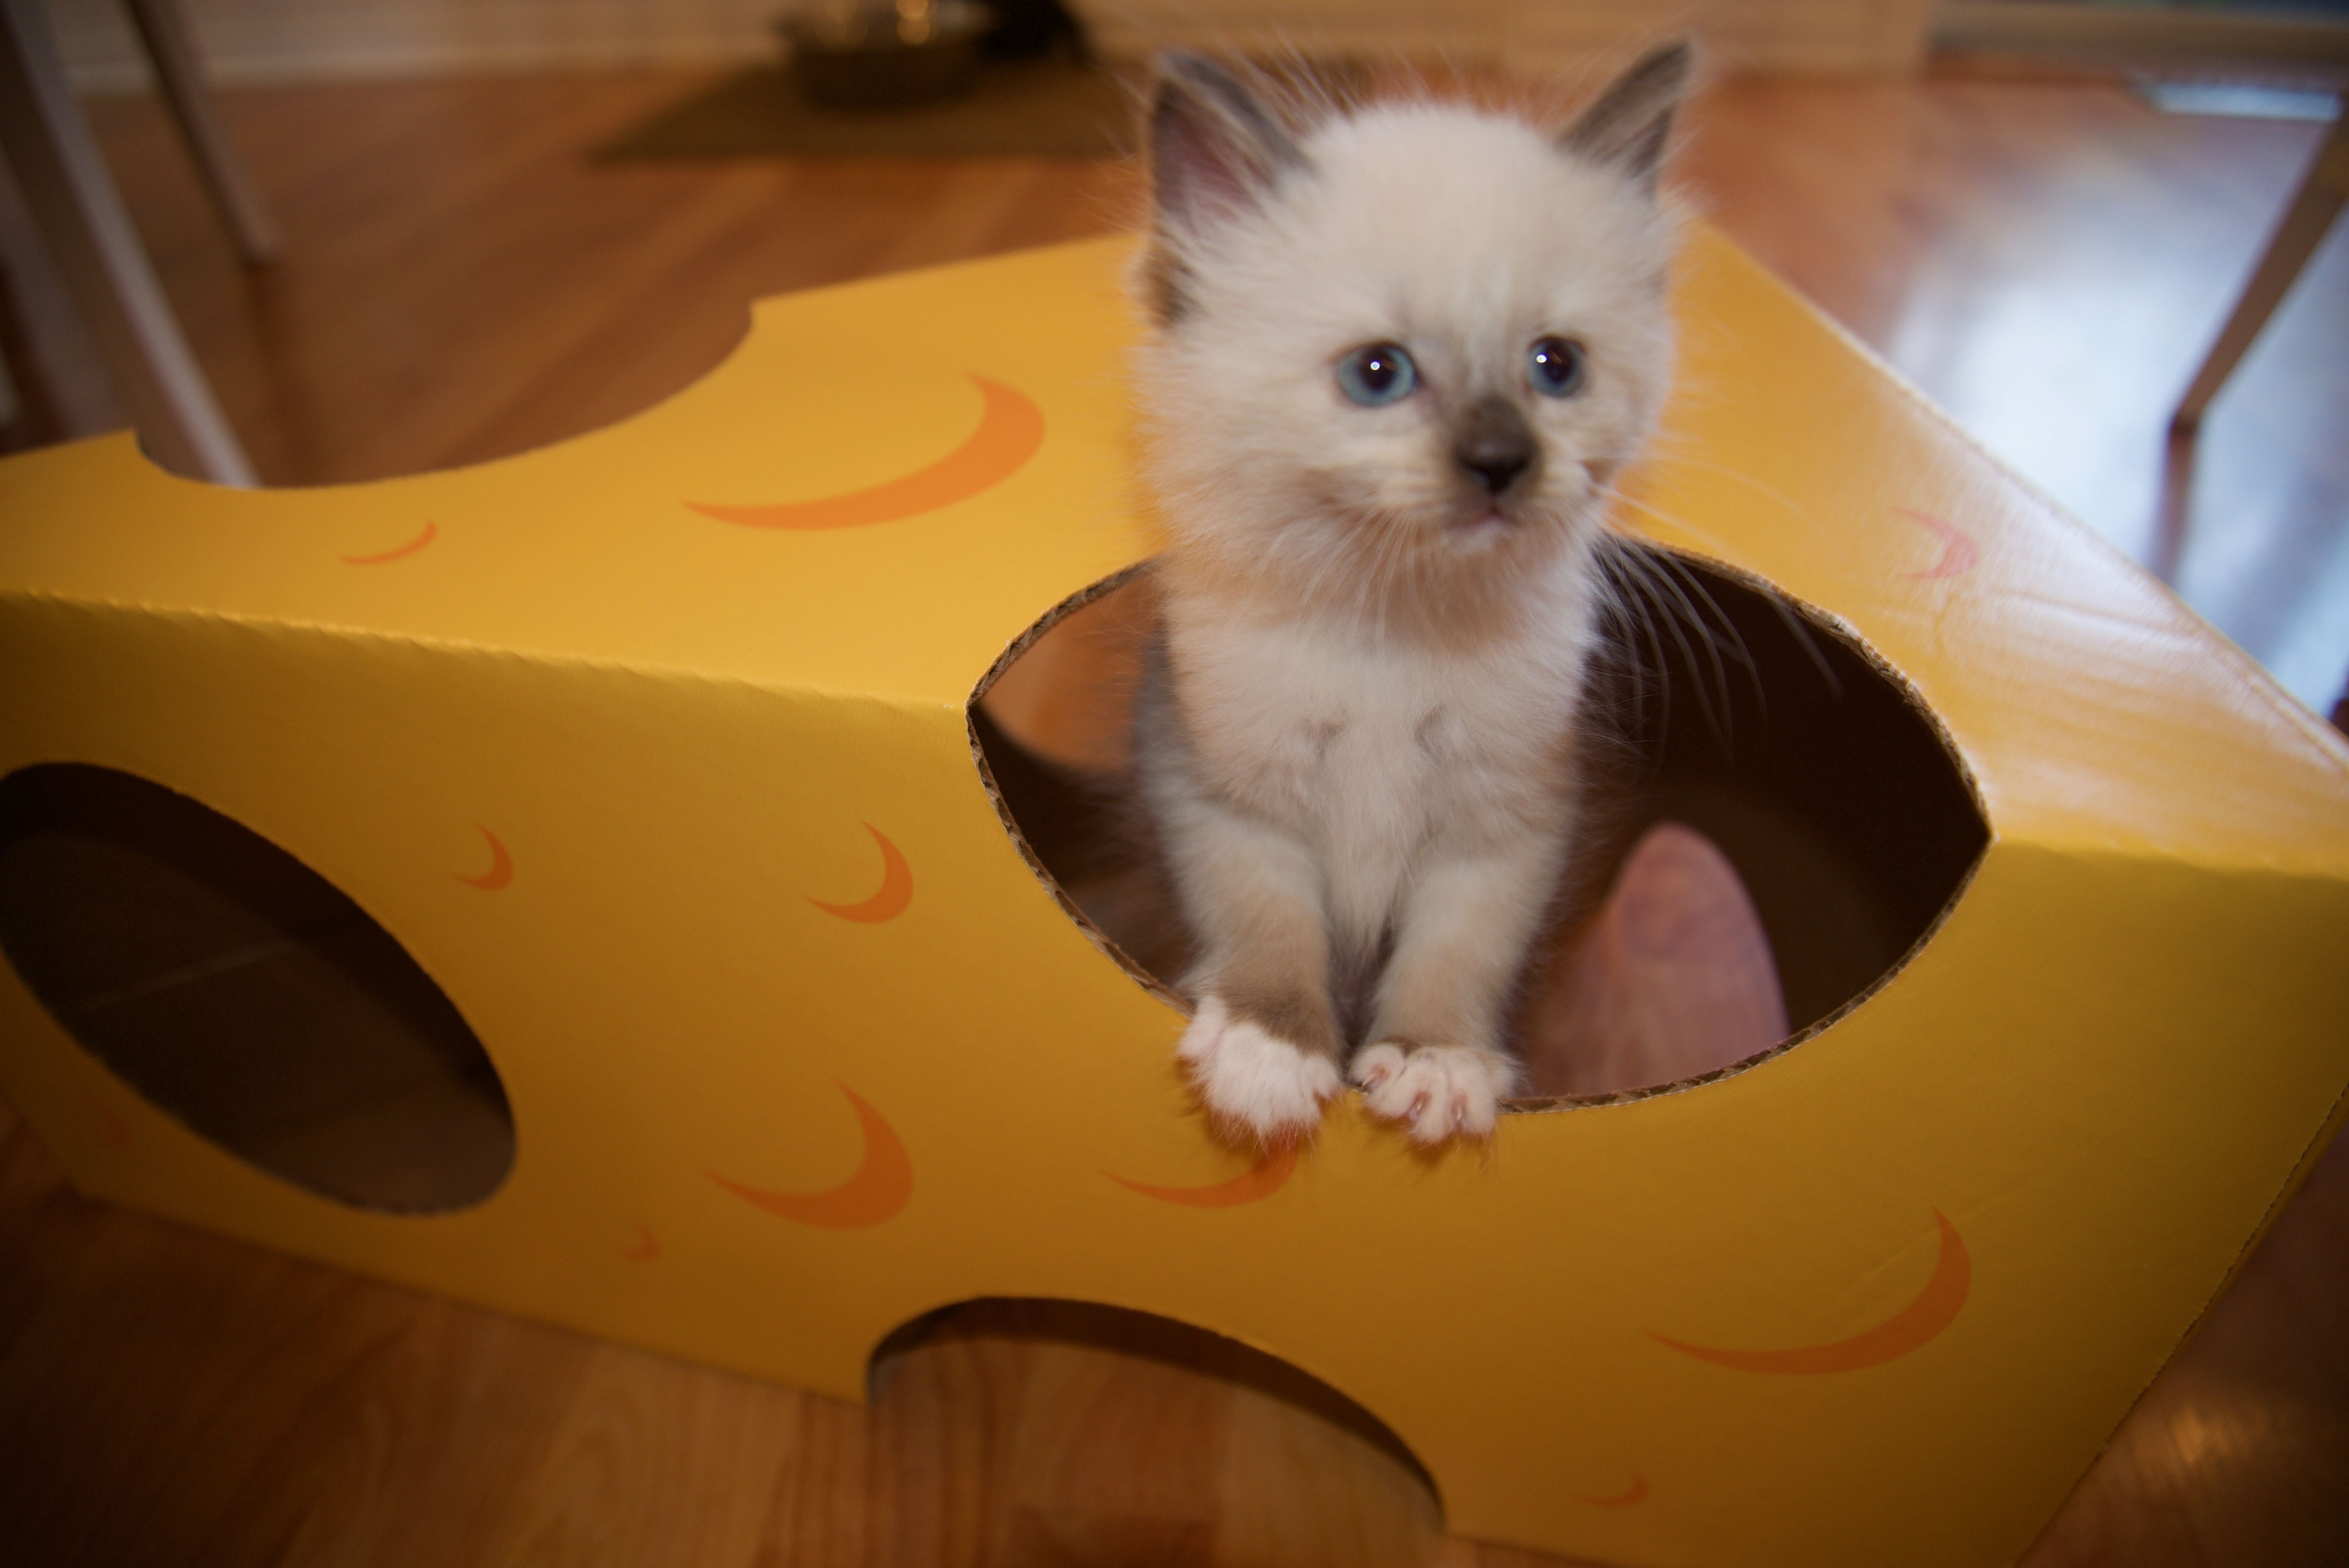 Kittens Love Cardboard Boxes Too This 6 Week Old Baby Is One Of Four Little Ones We Are Are Fostering For Metrowest H Foster Kittens Cat Care Kitten Proofing